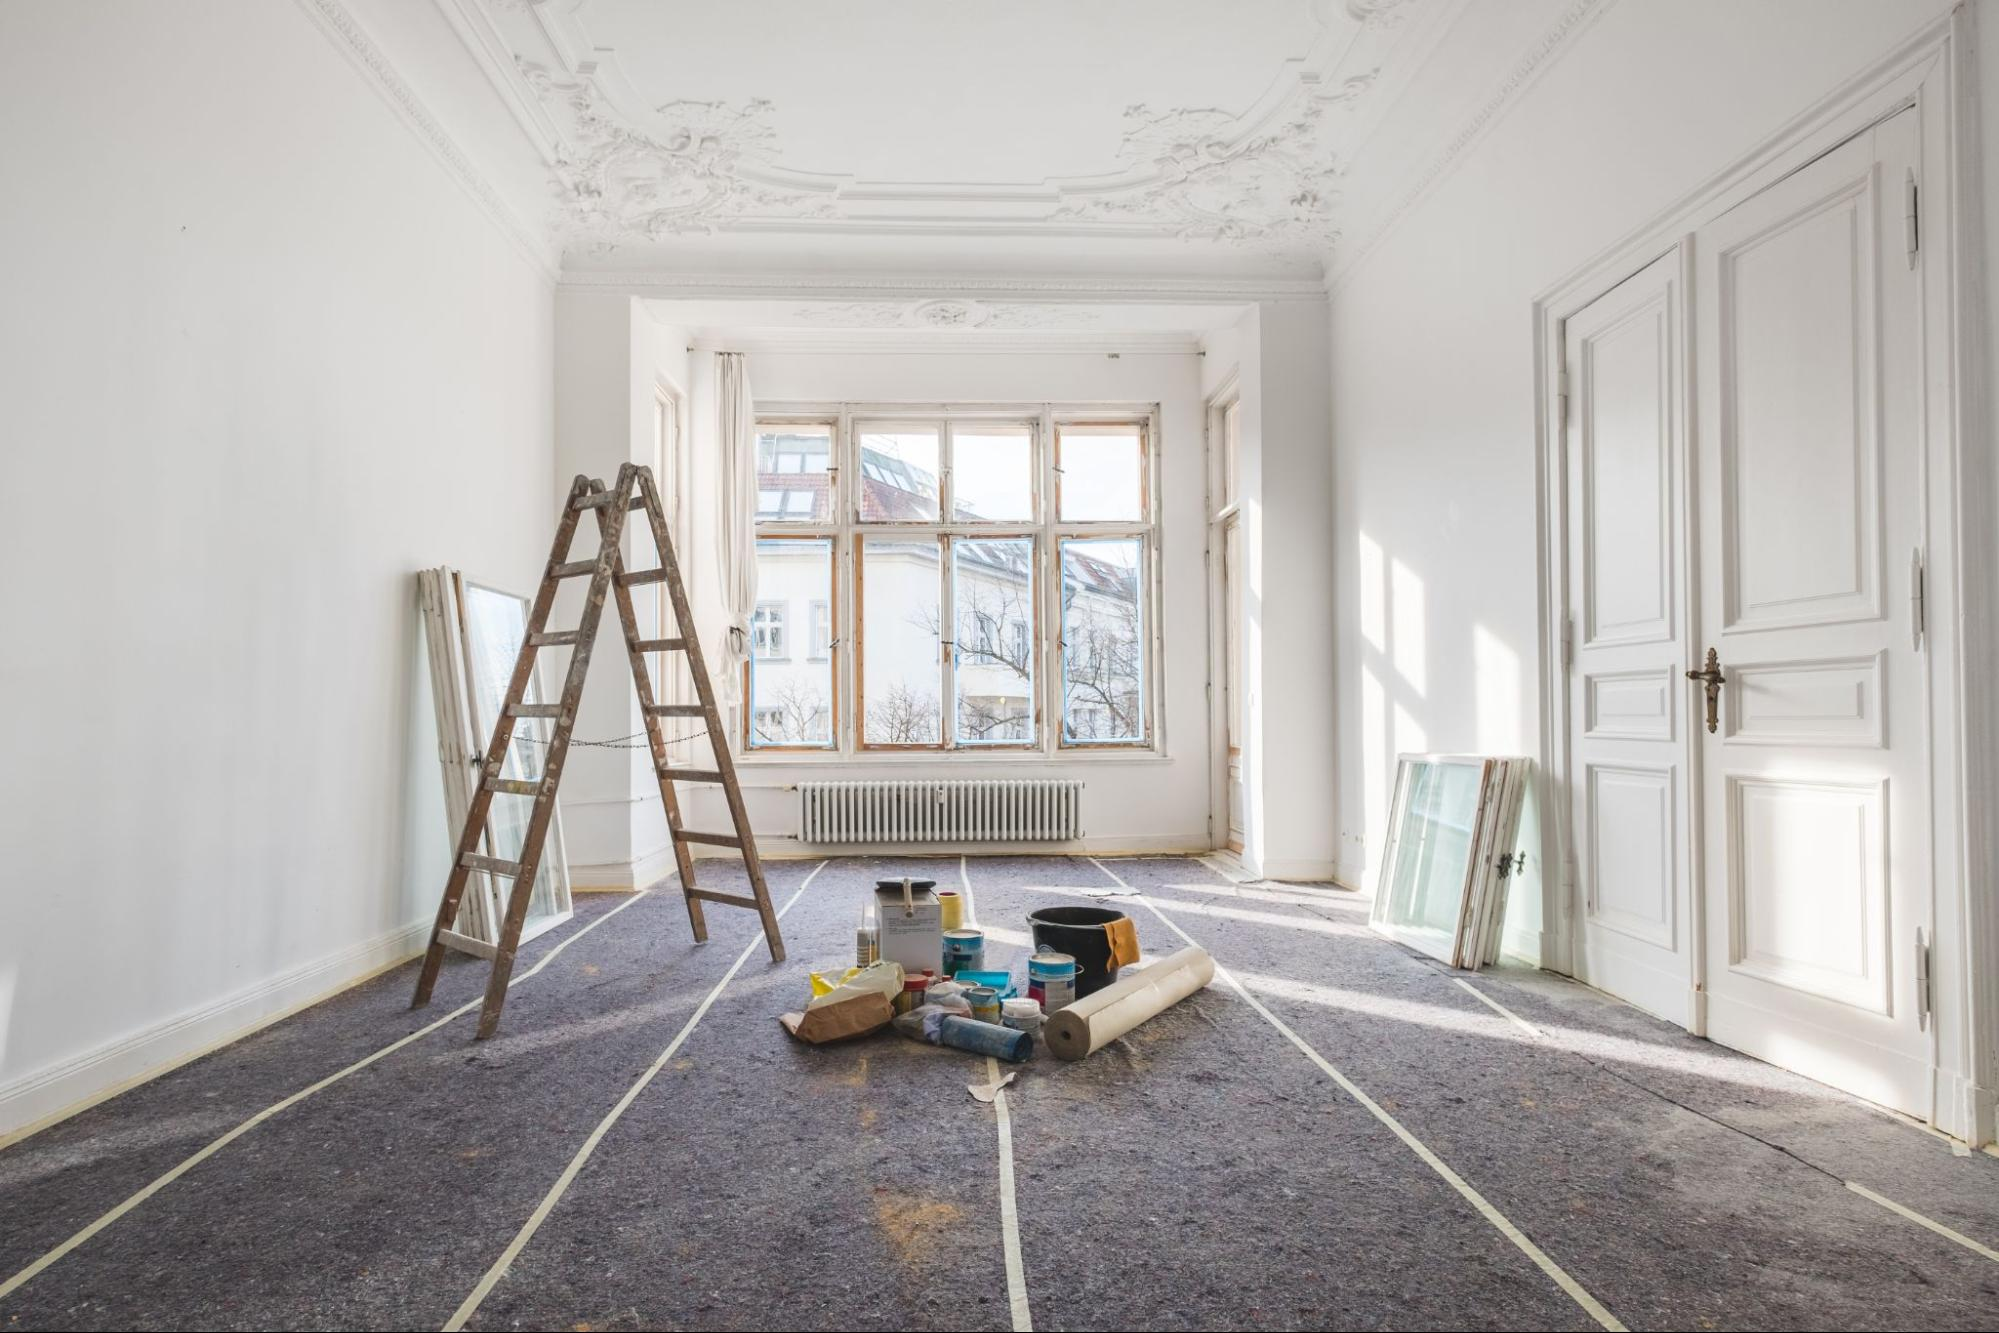 An empty room with renovation materials in the middle